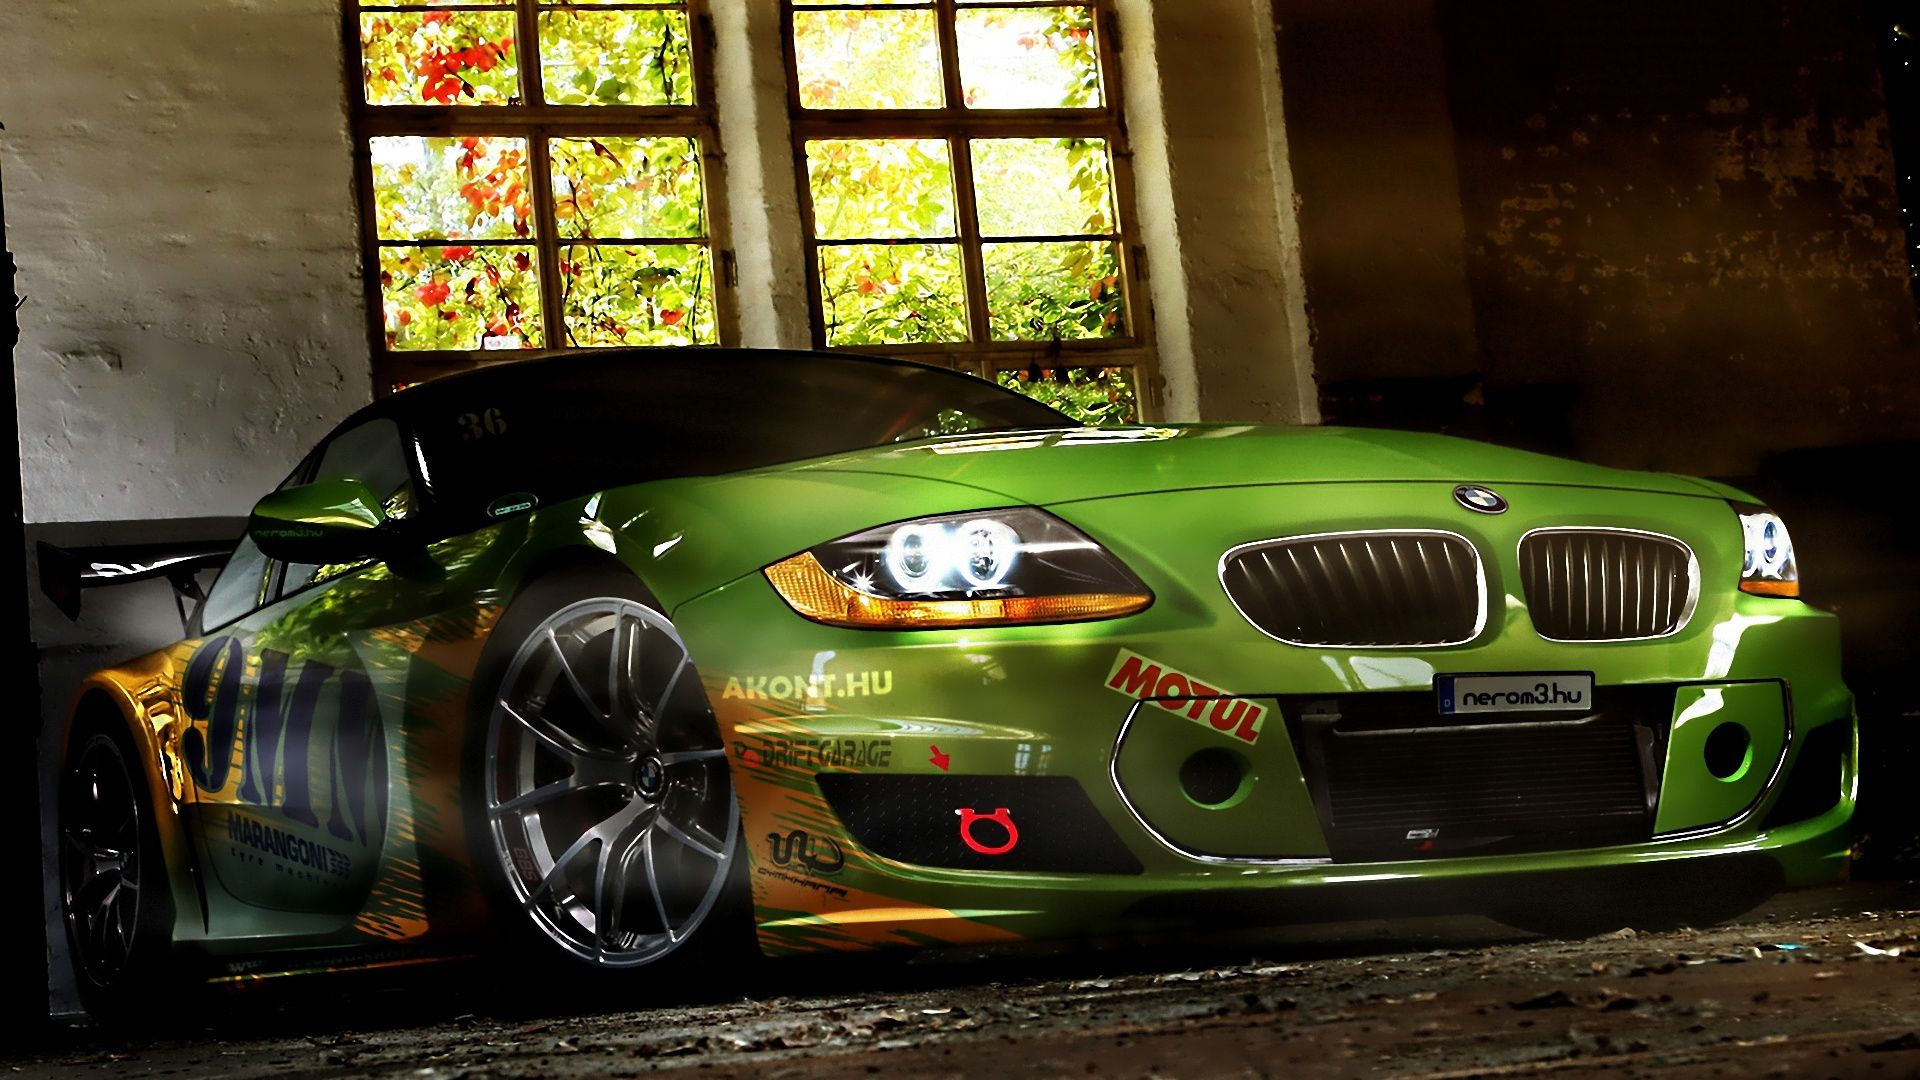 Green Bmw Modification Cars Hd Wallpaper Places To Visit